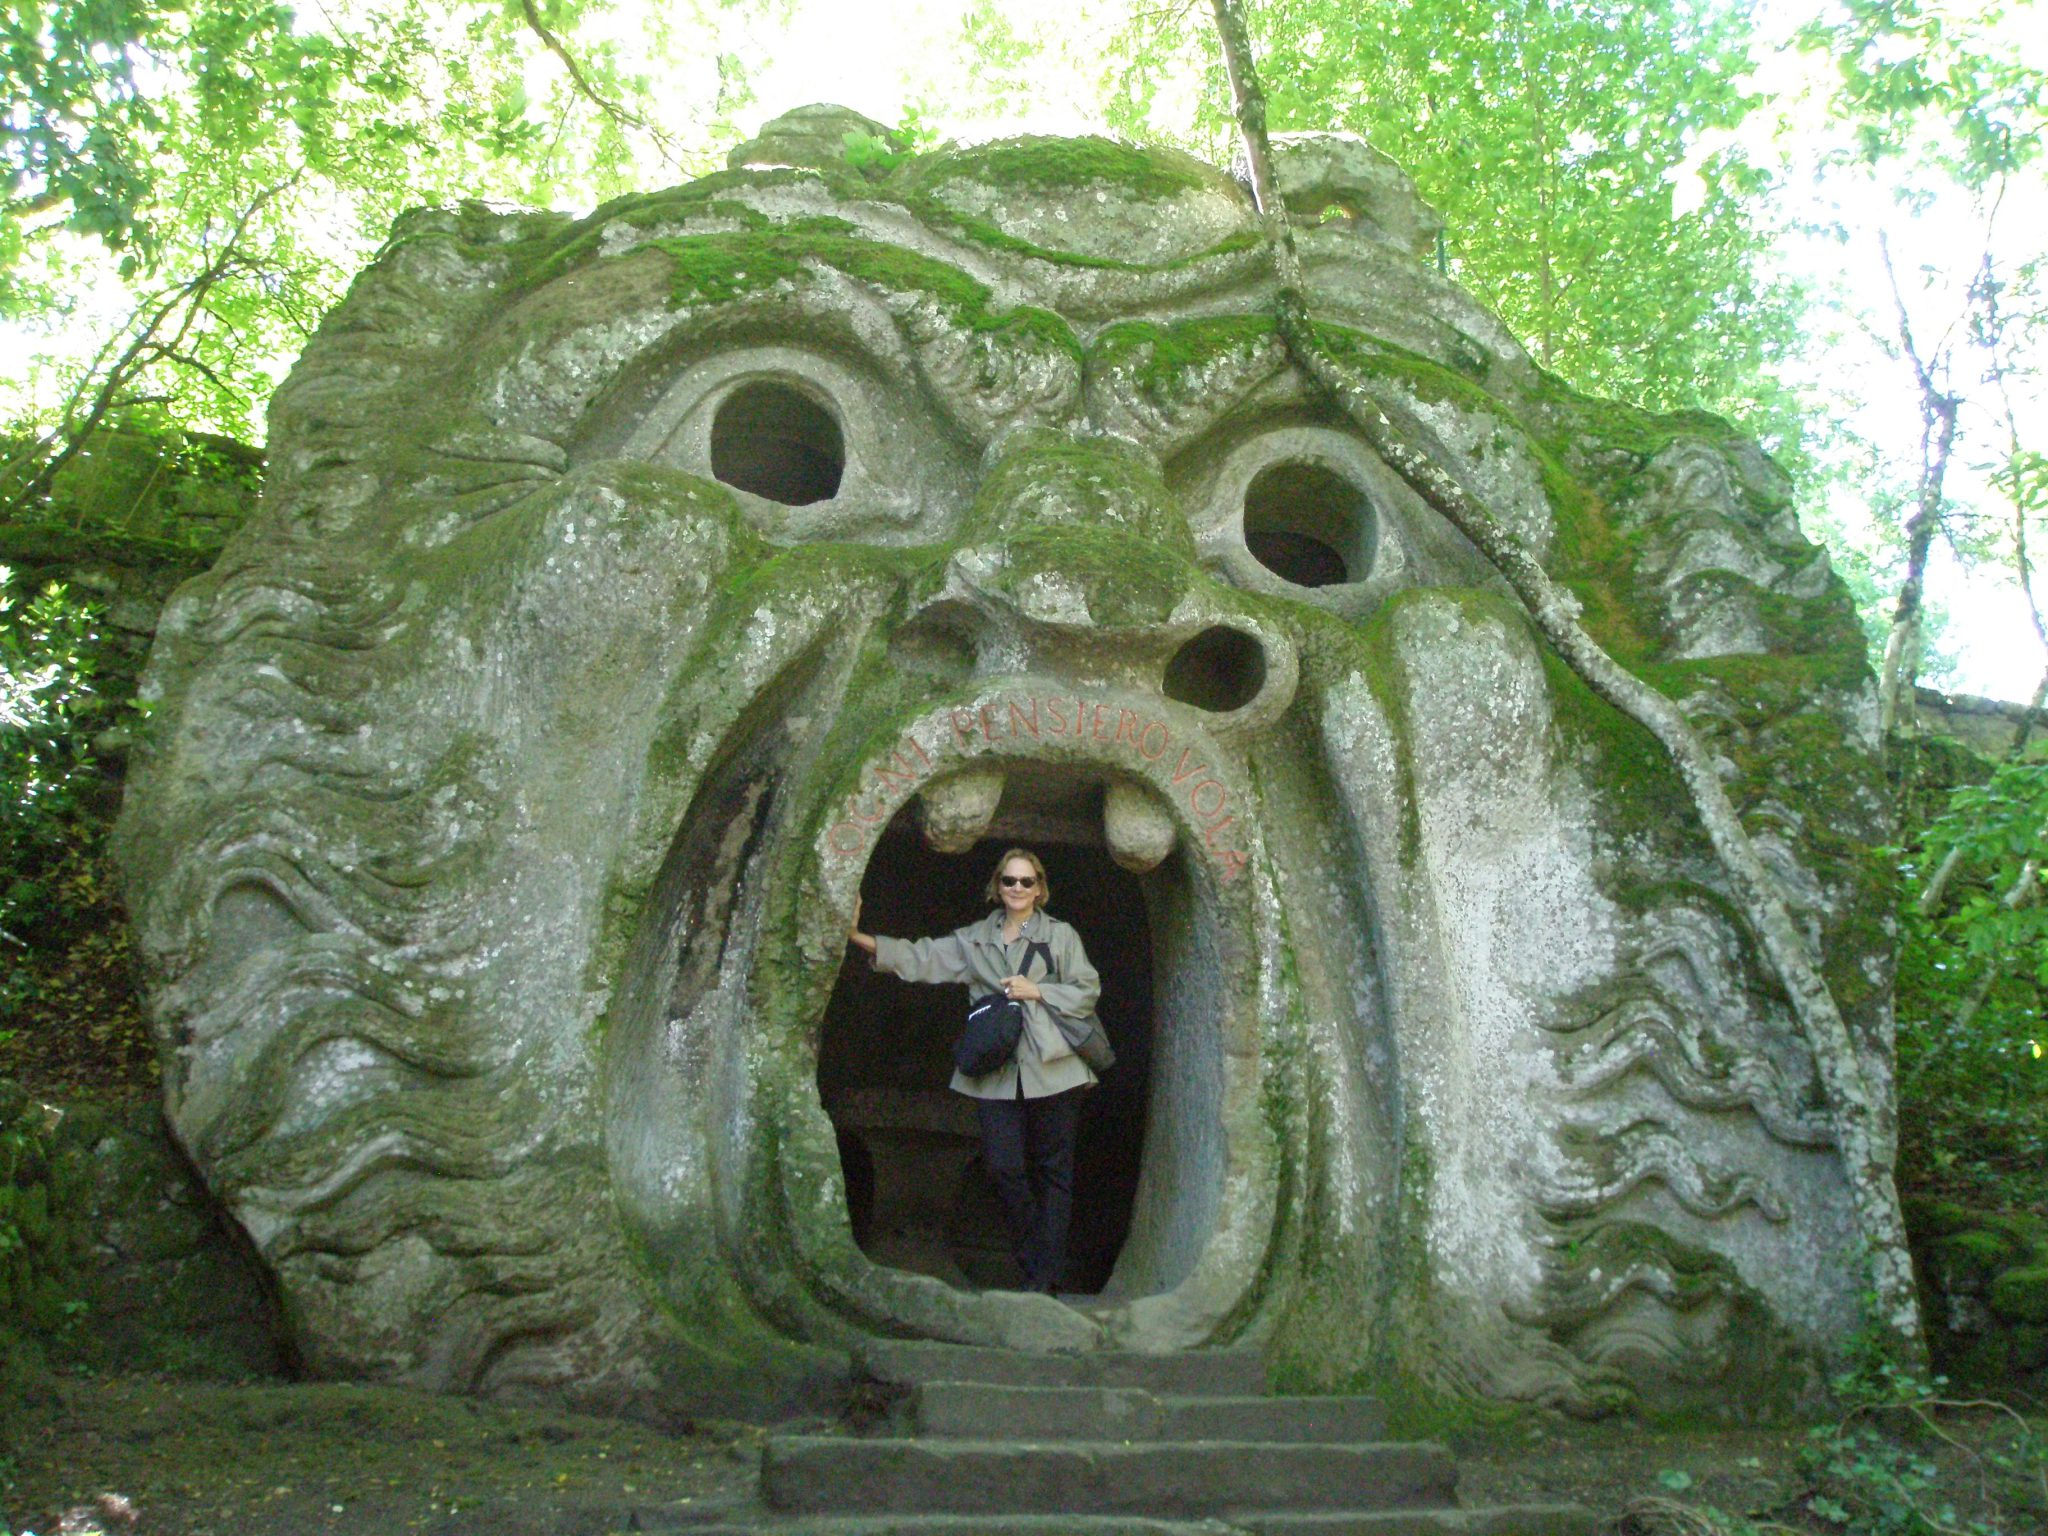 Nan, in the mouth of the Ogre, at the garden of Sacro Bosco ( or Sacred Wood ). This one-of-a-kind garden, in Bomarzo, Italy, was begun in 1552. Photo taken on May 14, 2014.